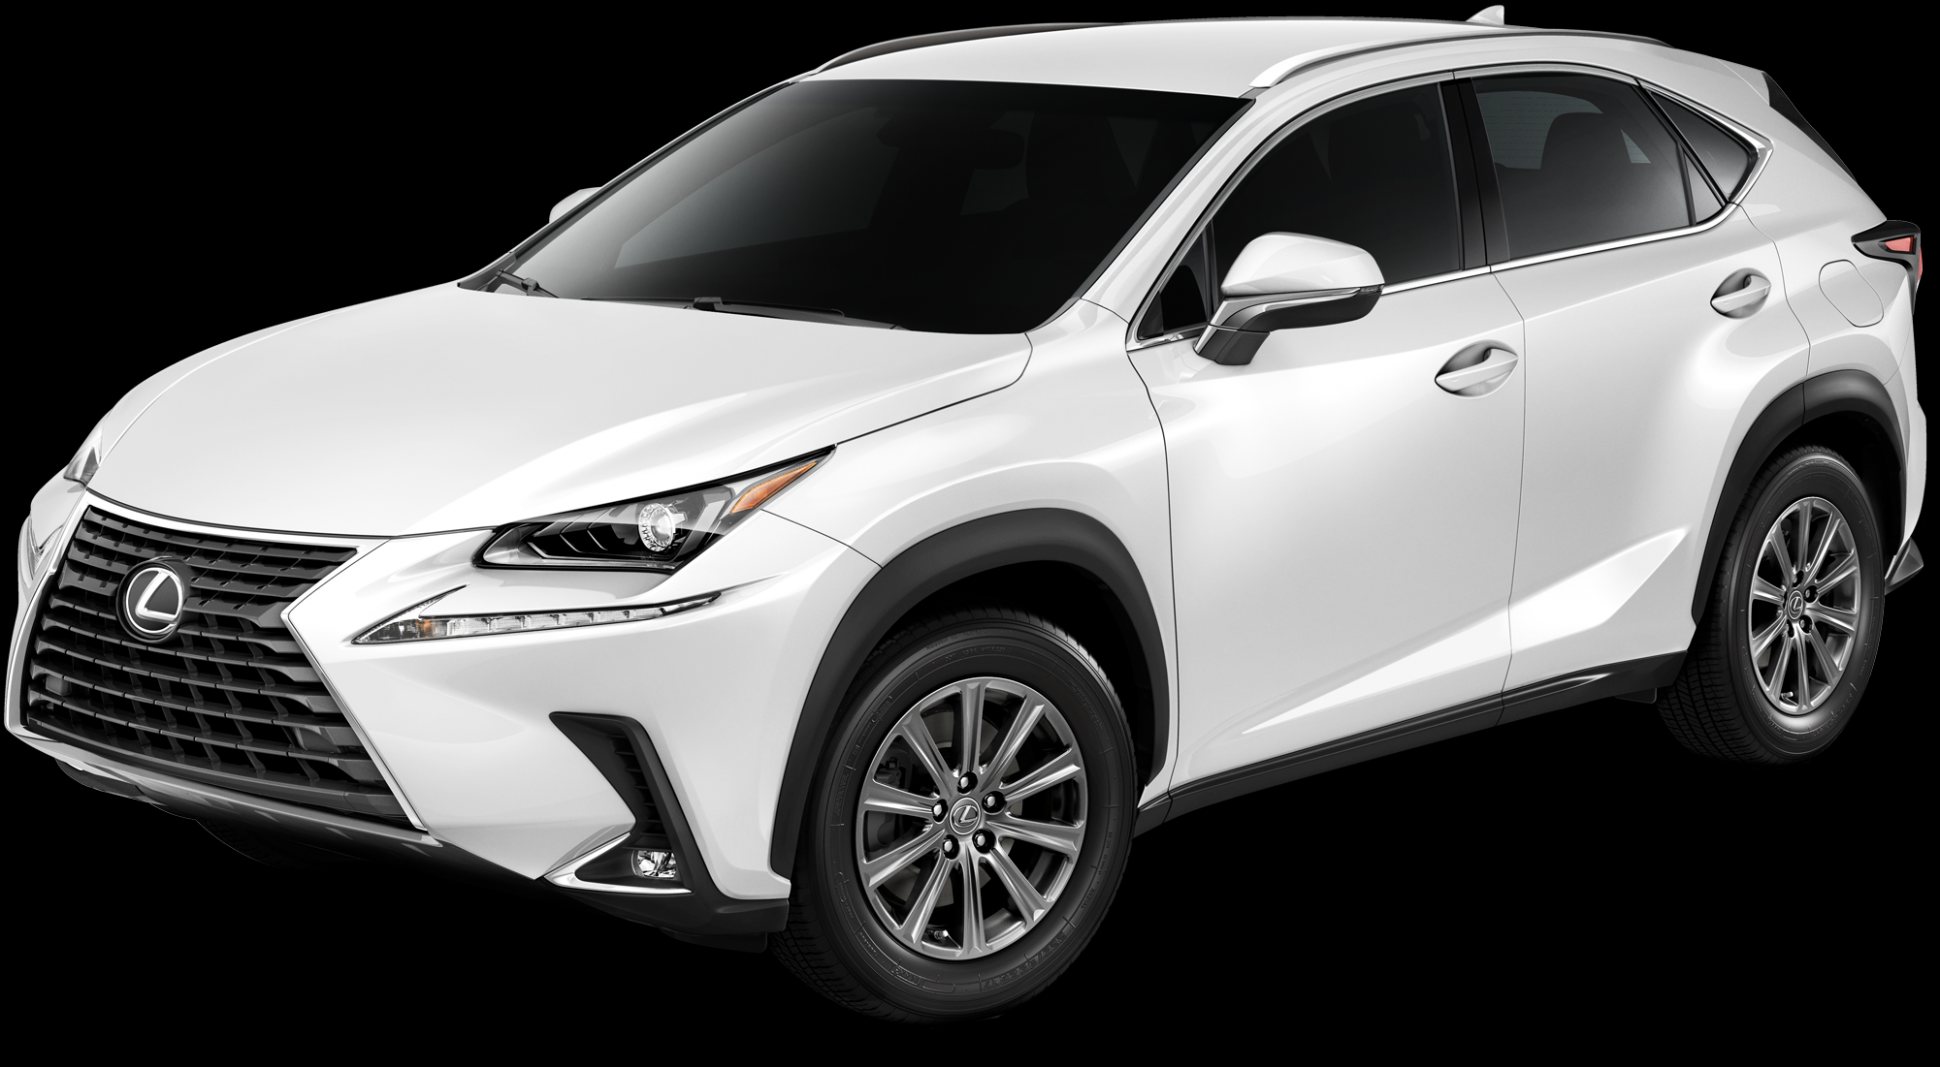 9 Lexus NX 9 Incentives, Specials & Offers in Dallas TX